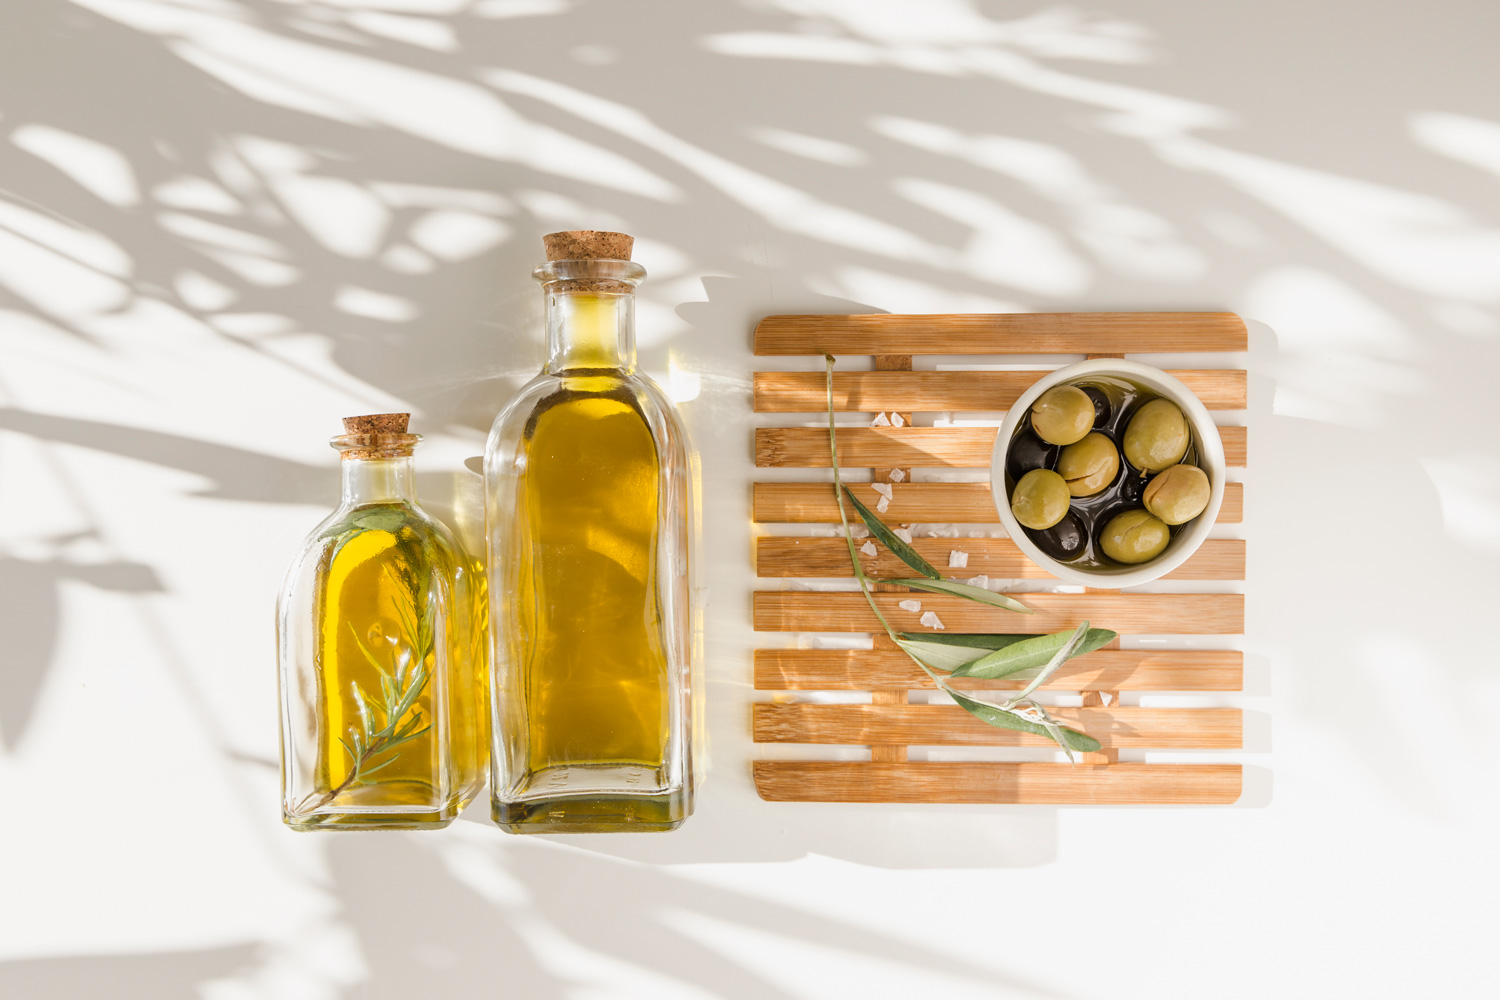 WHAT YOU NEED TO KNOW ABOUT GOOD QUALITY OLIVE OIL